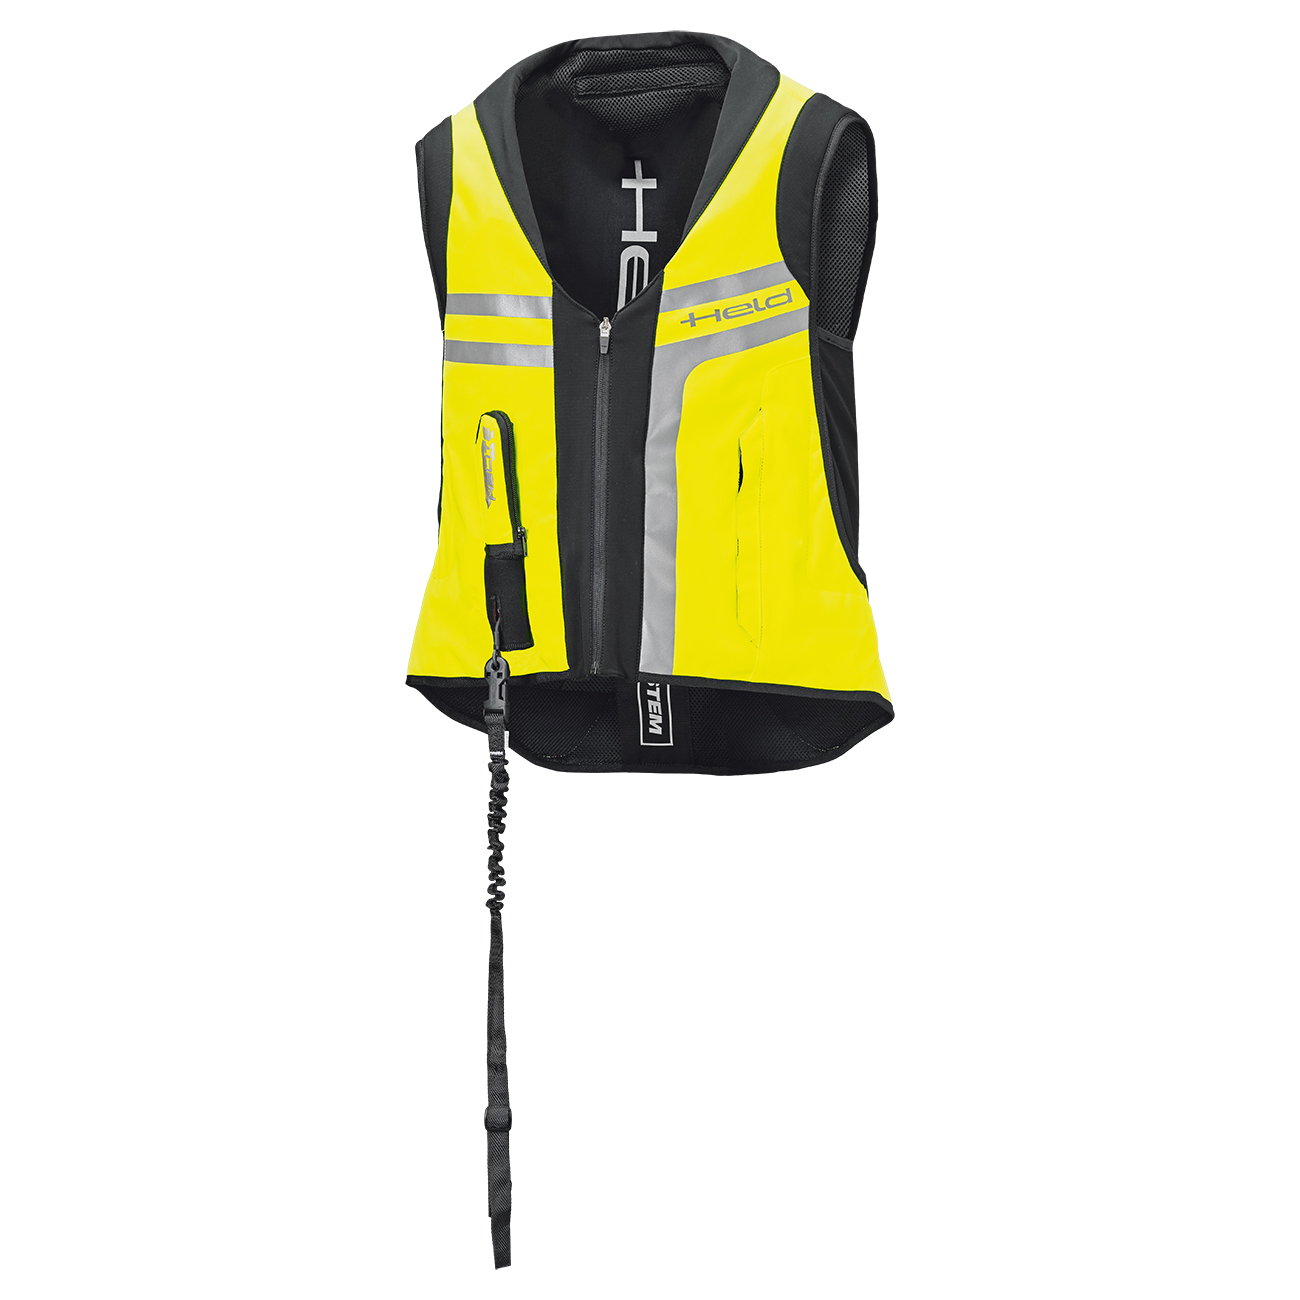 HELD - Giacca Protettiva Gonf. AIR VEST II (Giallo Flou)(Art.6894)(Fronte)